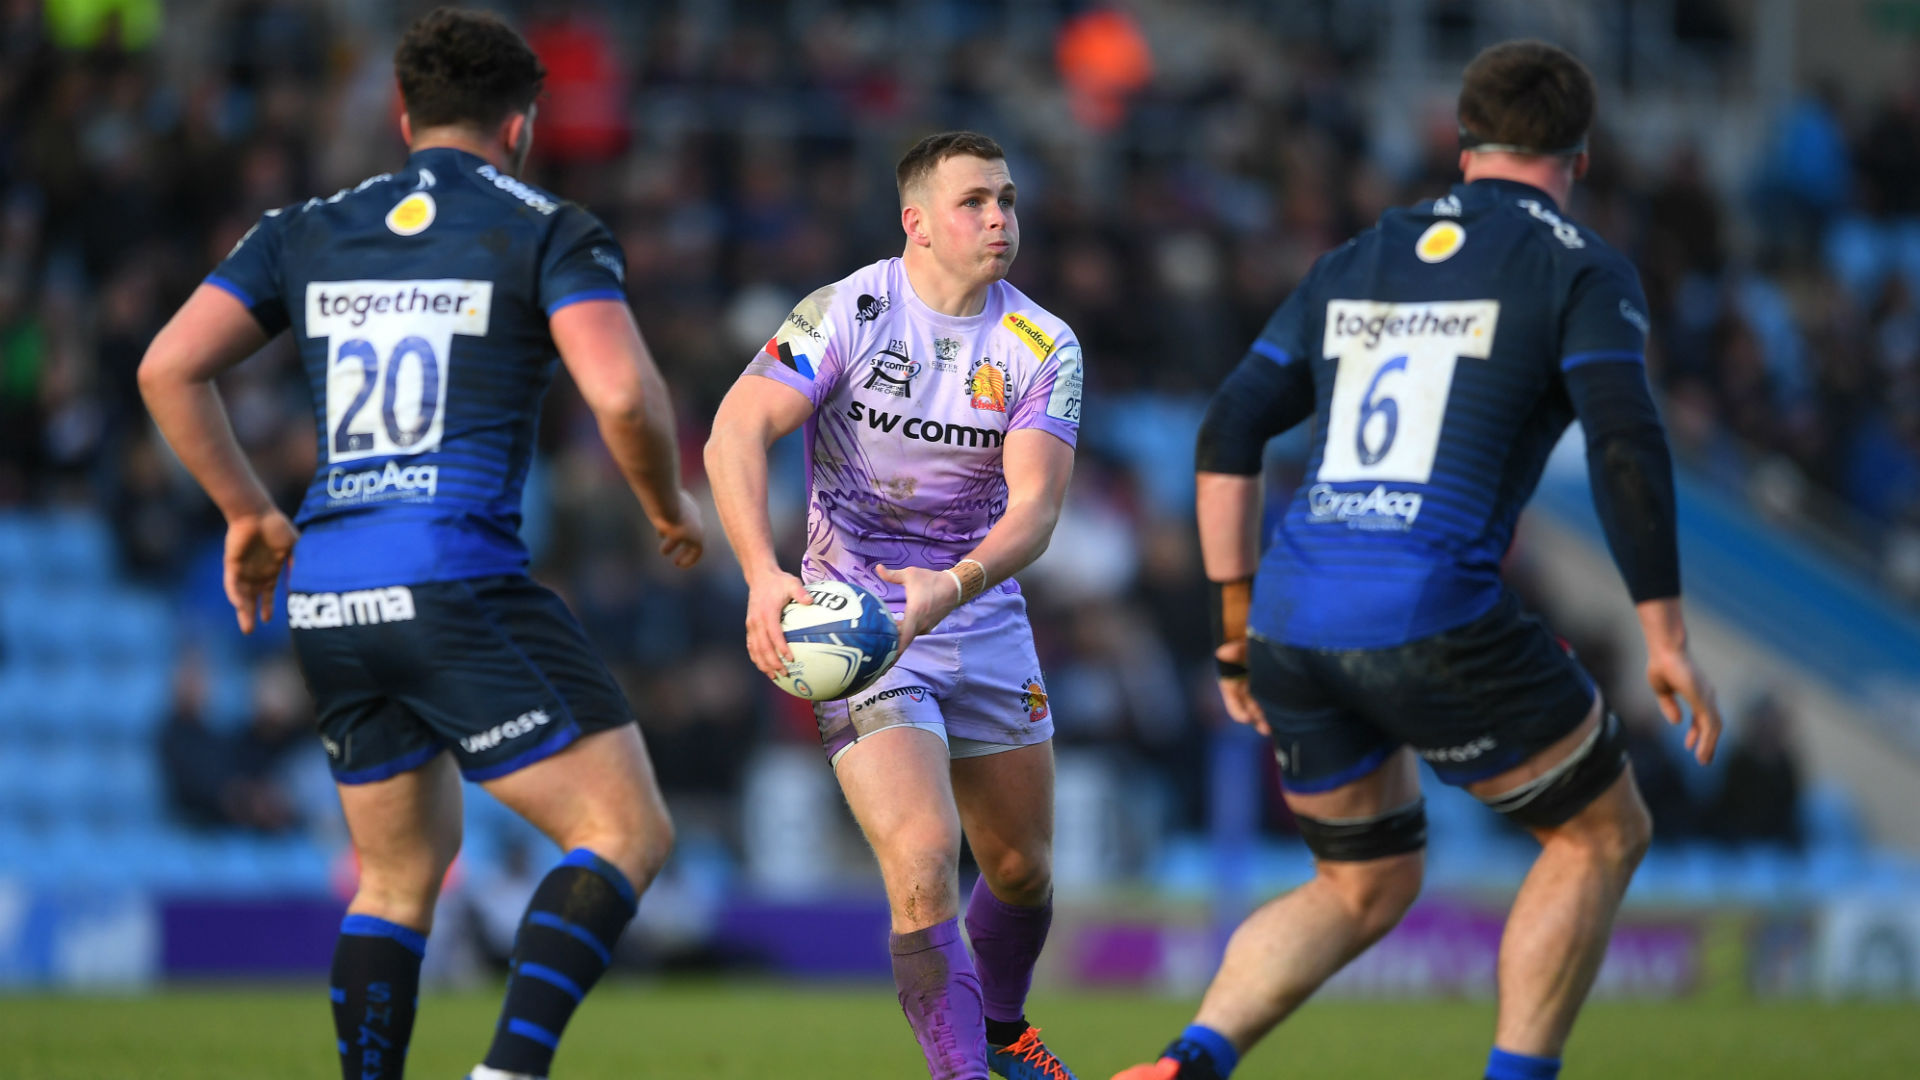 Brothers Joe and Sam Simmonds were influential as Exeter Chiefs moved to the brink of a quarter-final spot in Europe.